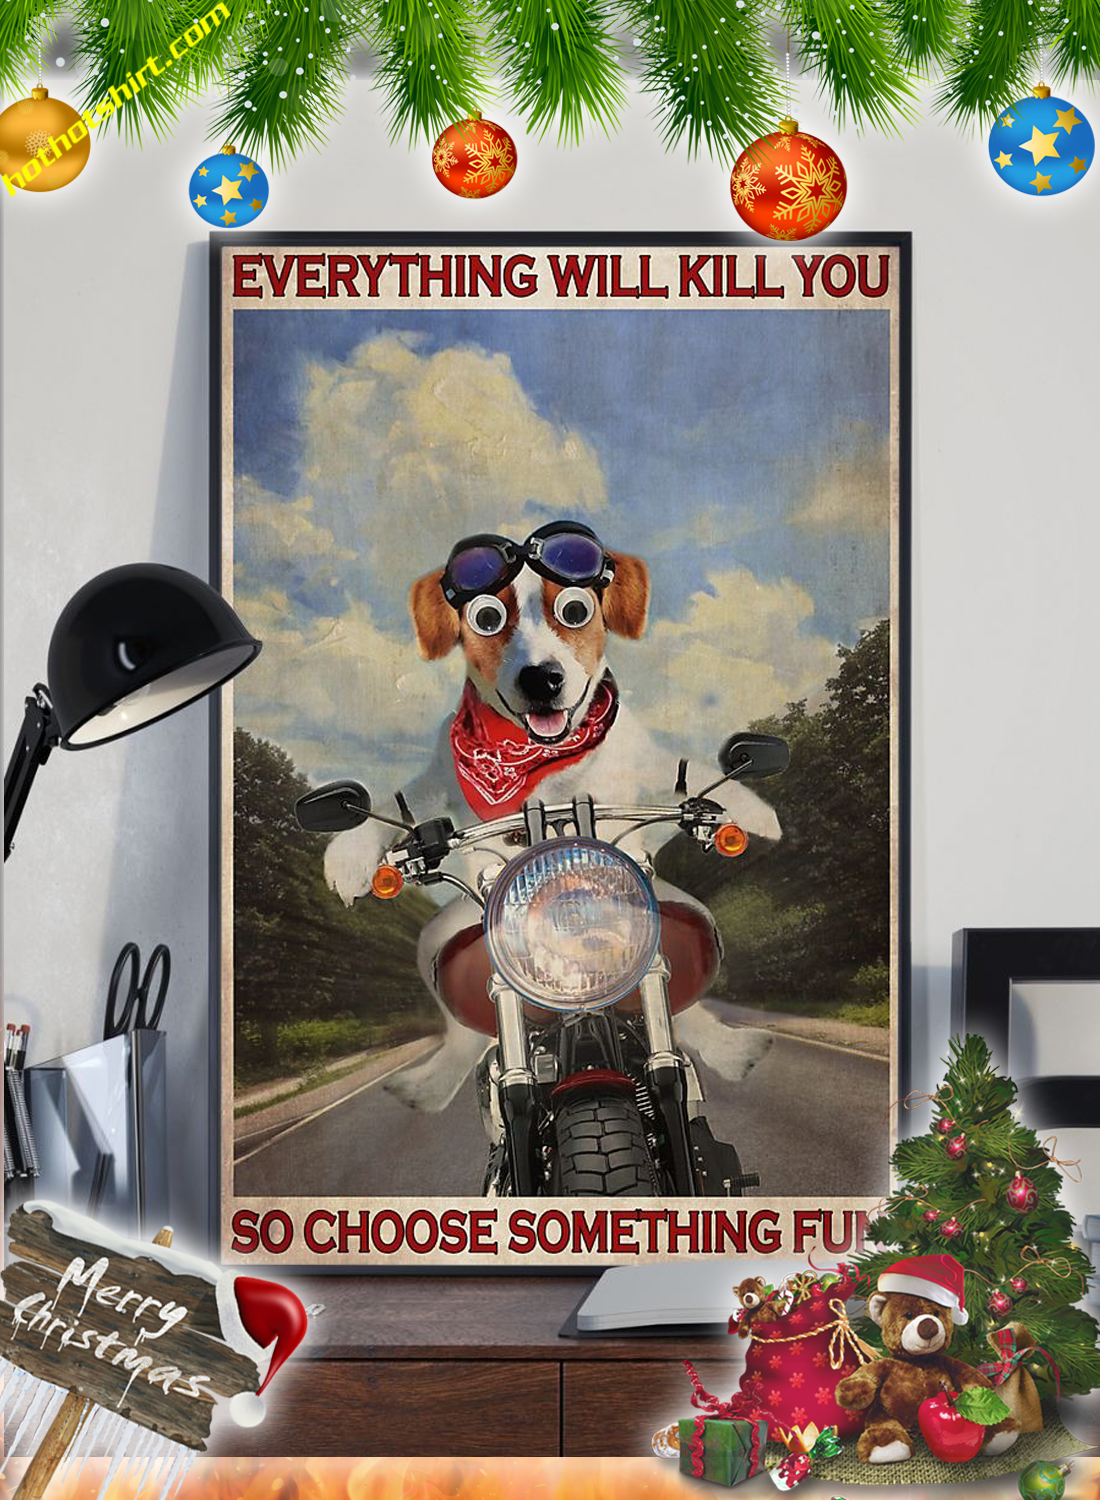 Jack Russel Motorcycle Everything will kill you so choose something fun poster 2